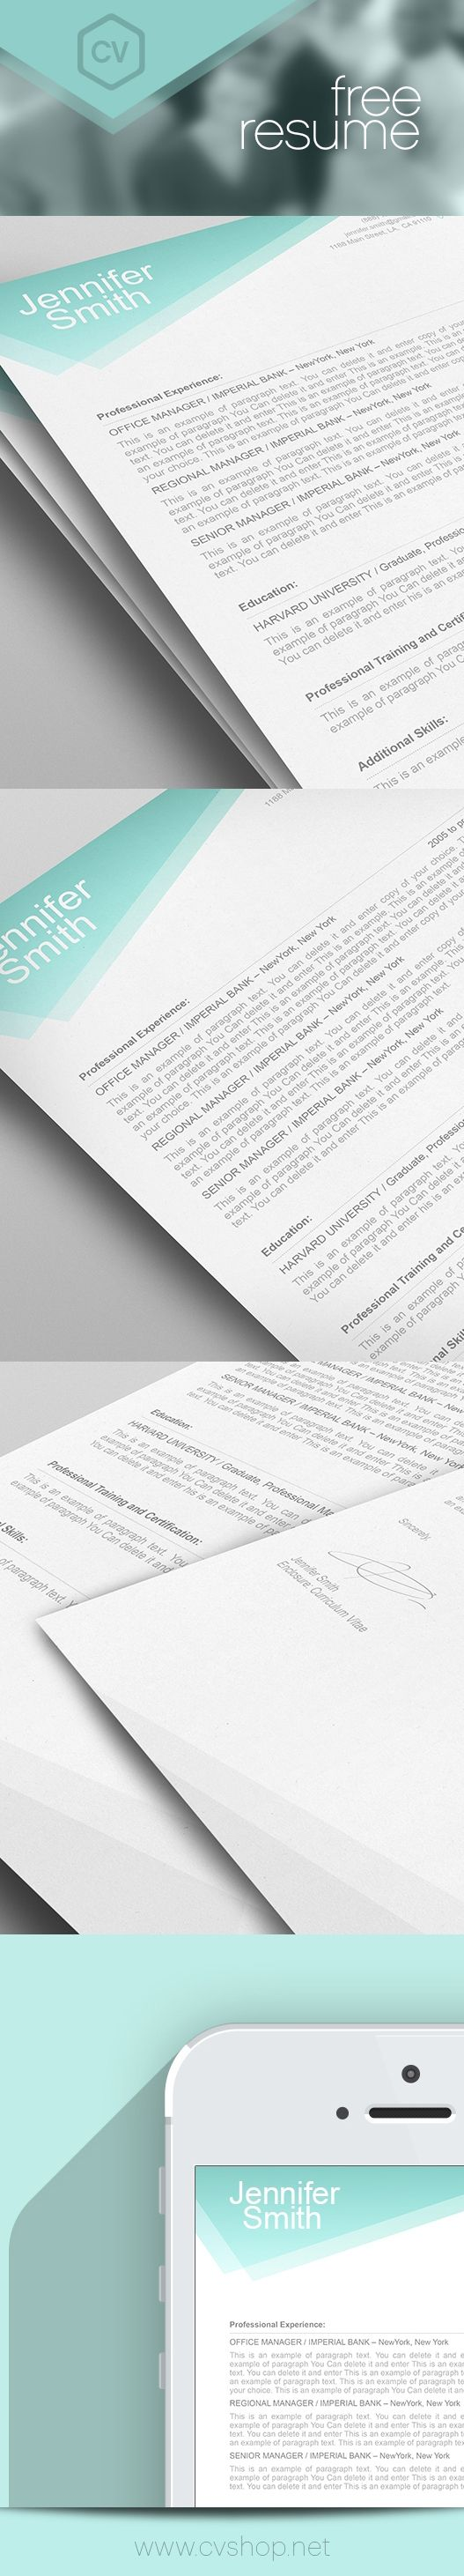 121 Best Resume Templates By Resumeway Images On Pinterest